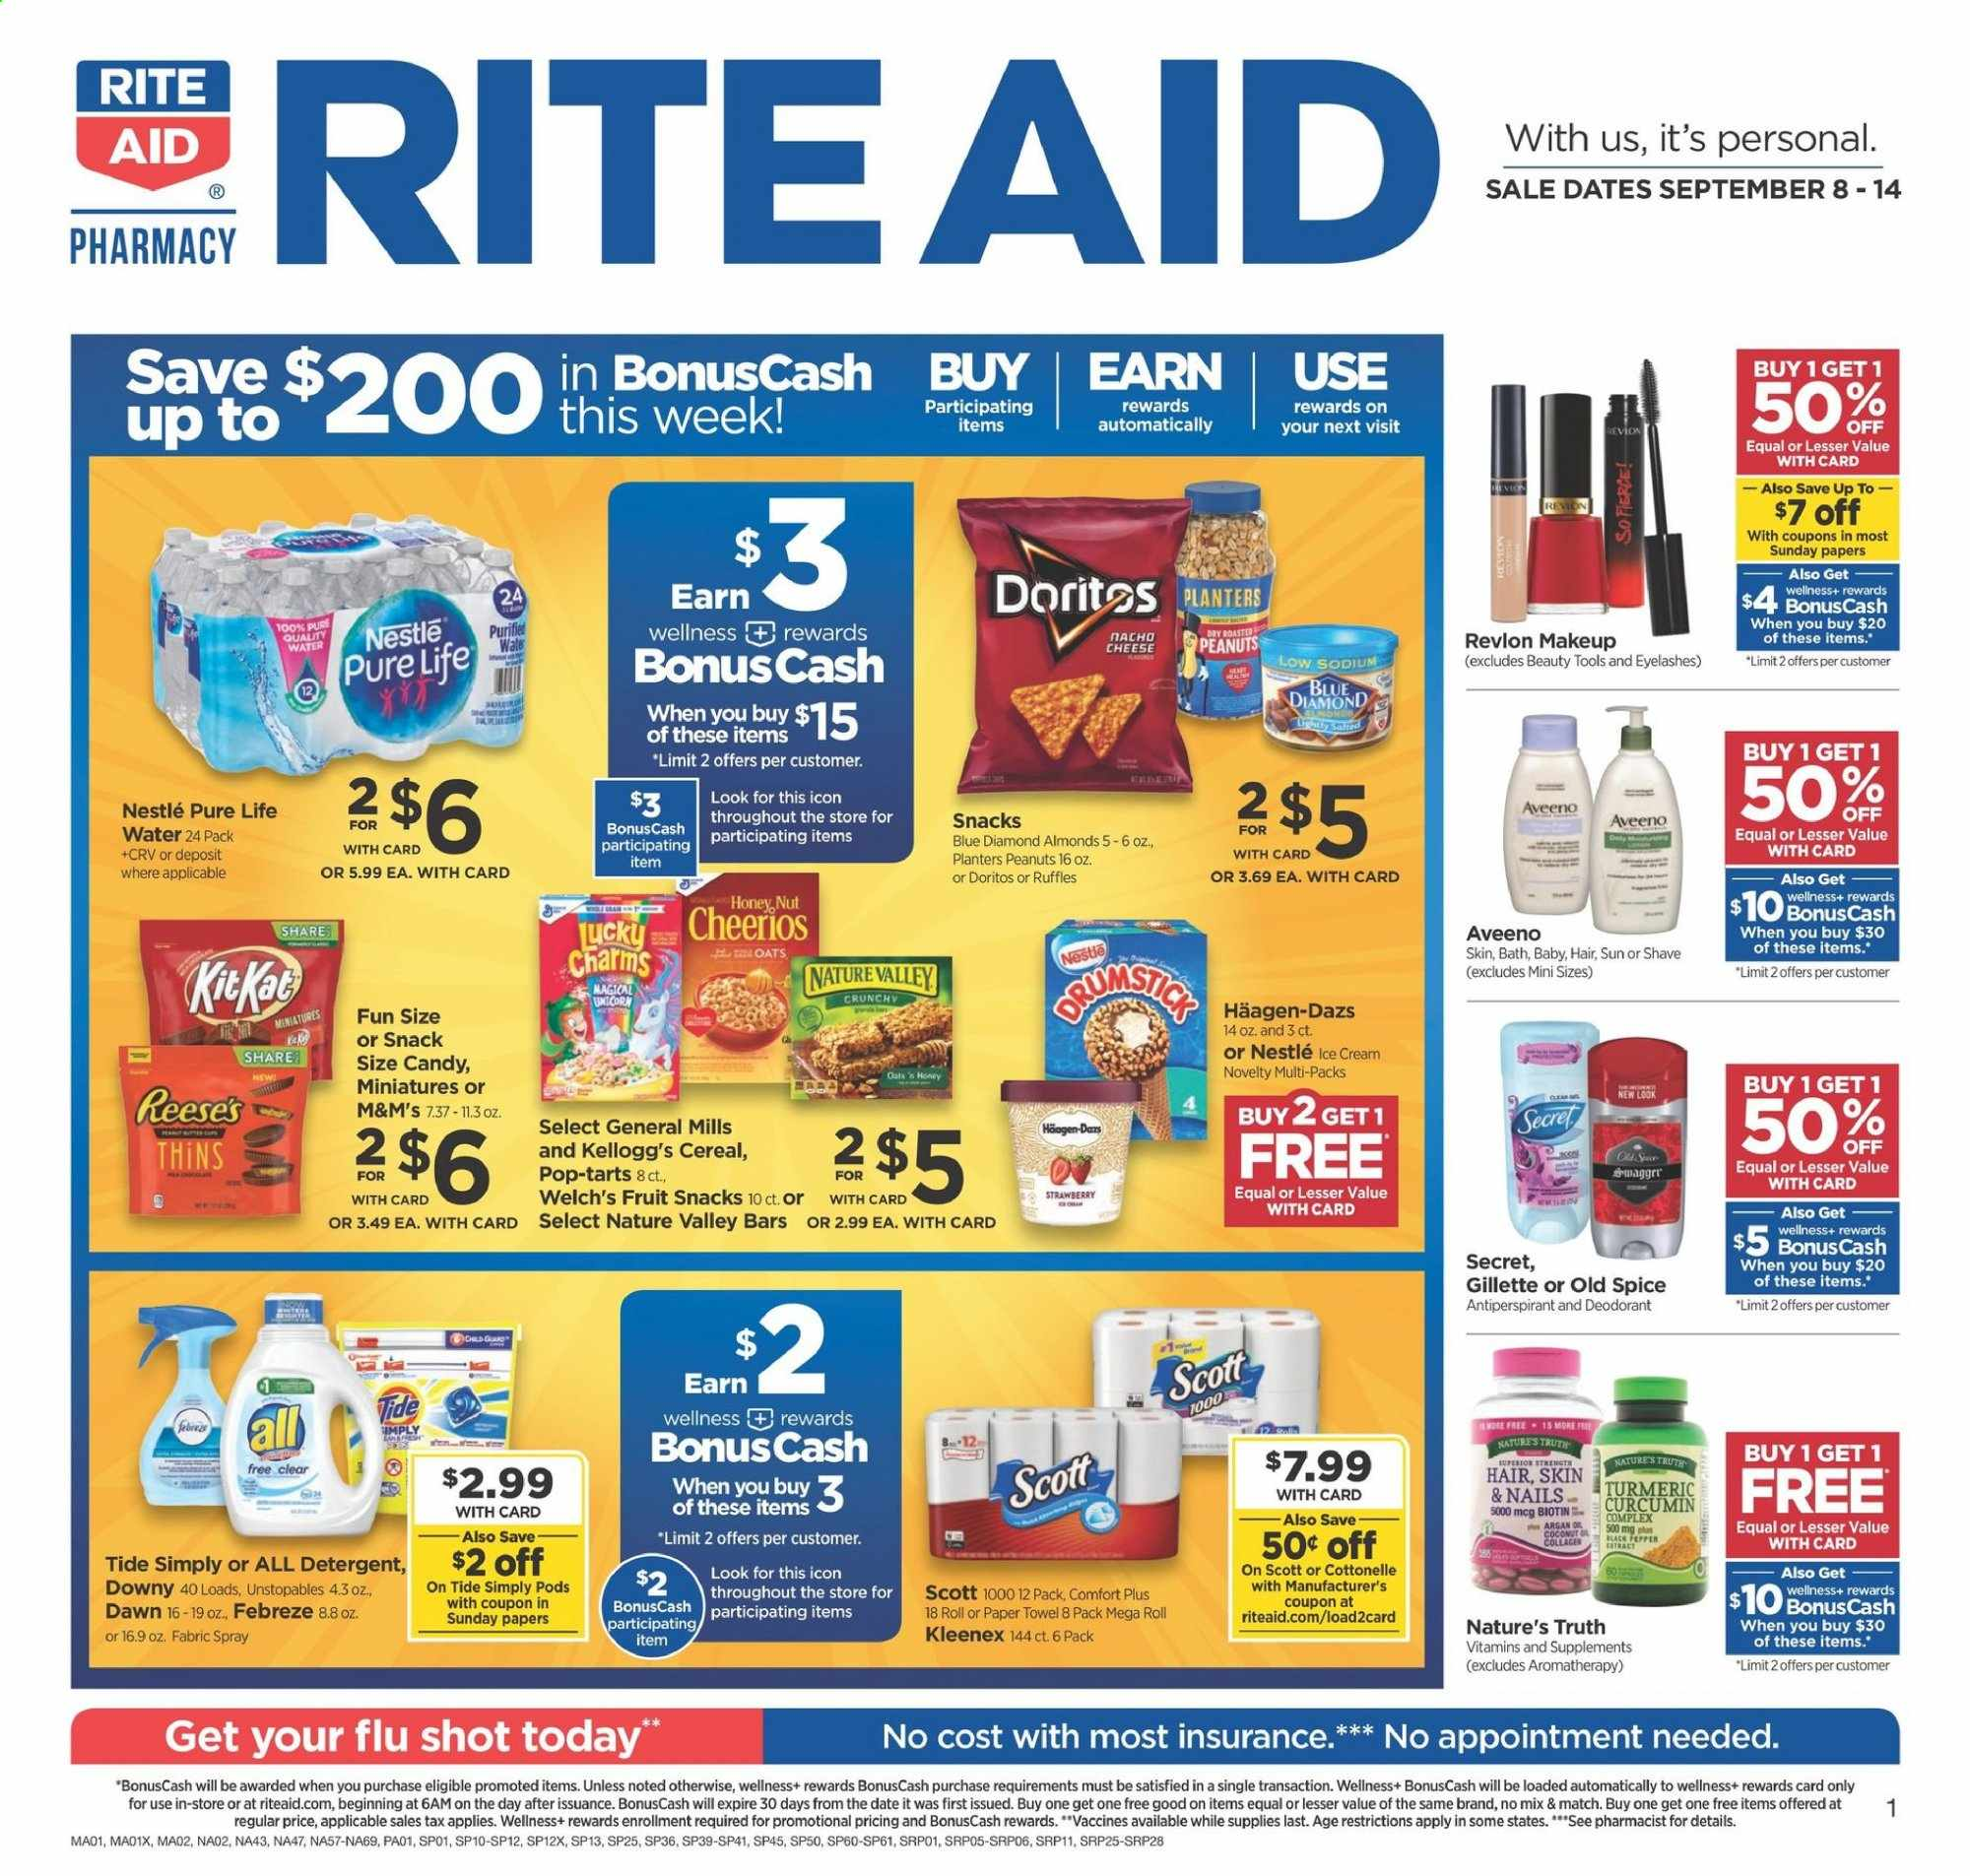 RITE AID Flyer - 09.08.2019 - 09.14.2019 - Sales products - almonds, aveeno, bath, biotin, cereals, cottonelle, dates, deodorant, detergent, doritos, downy, febreze, gillette, kleenex, makeup, nature's truth, nestlé, revlon, scott, secret, spray, tide, turmeric, unstopables, honey, ice cream, cheerios, paper towel, peanuts, oats, old spice, cheese, candy, snack, cereal, eyelashes, reese, strawberry, fruit, cream, m&m's. Page 1.